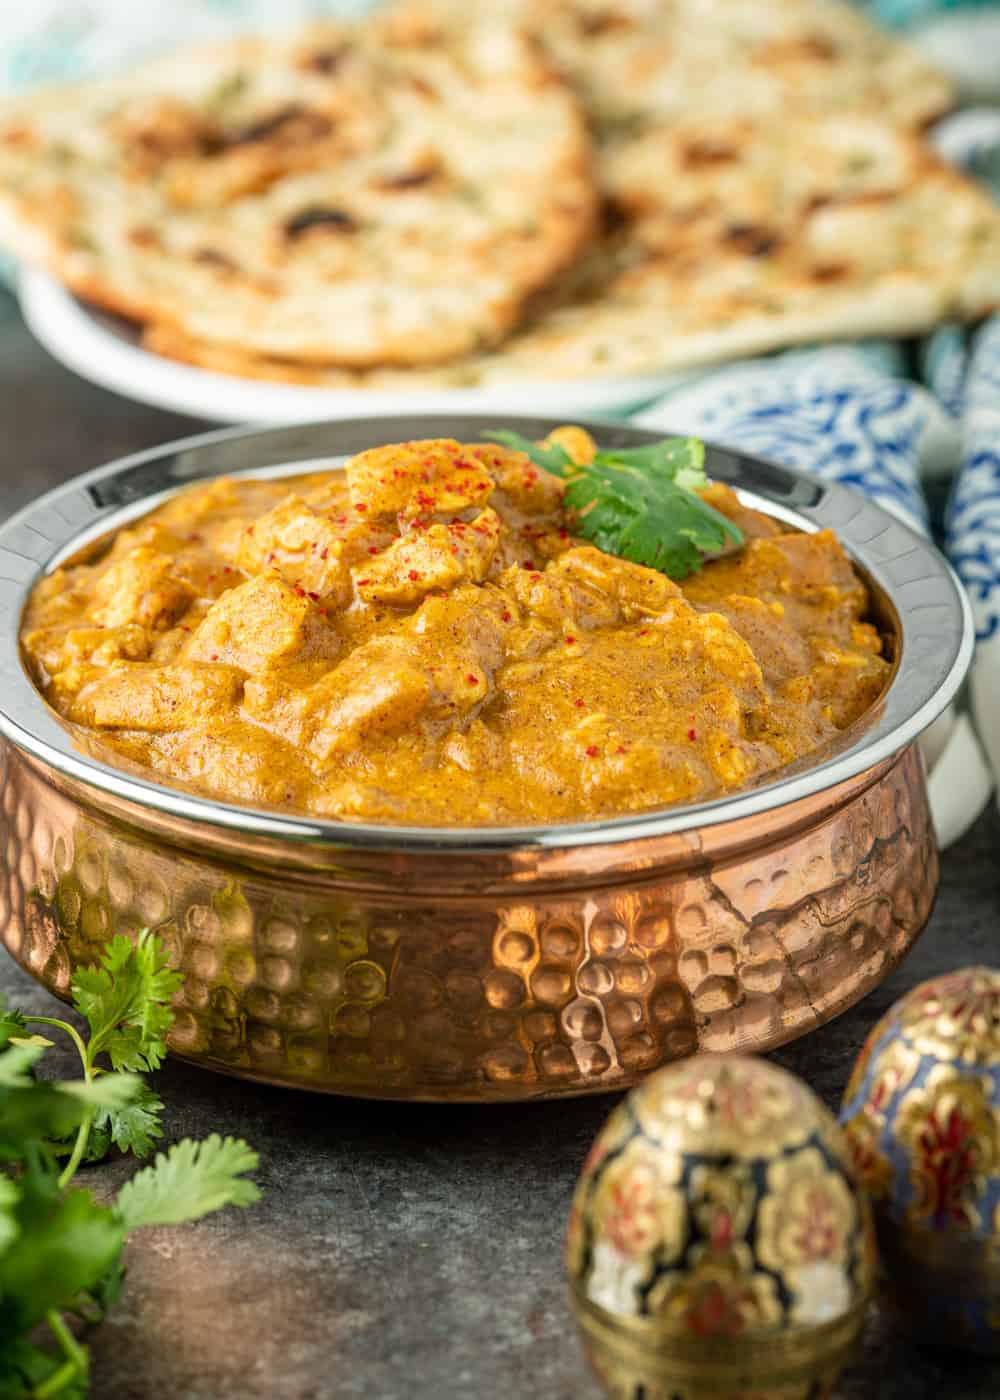 copper serving bowl filled with Indian chicken curry in a creamy sauce